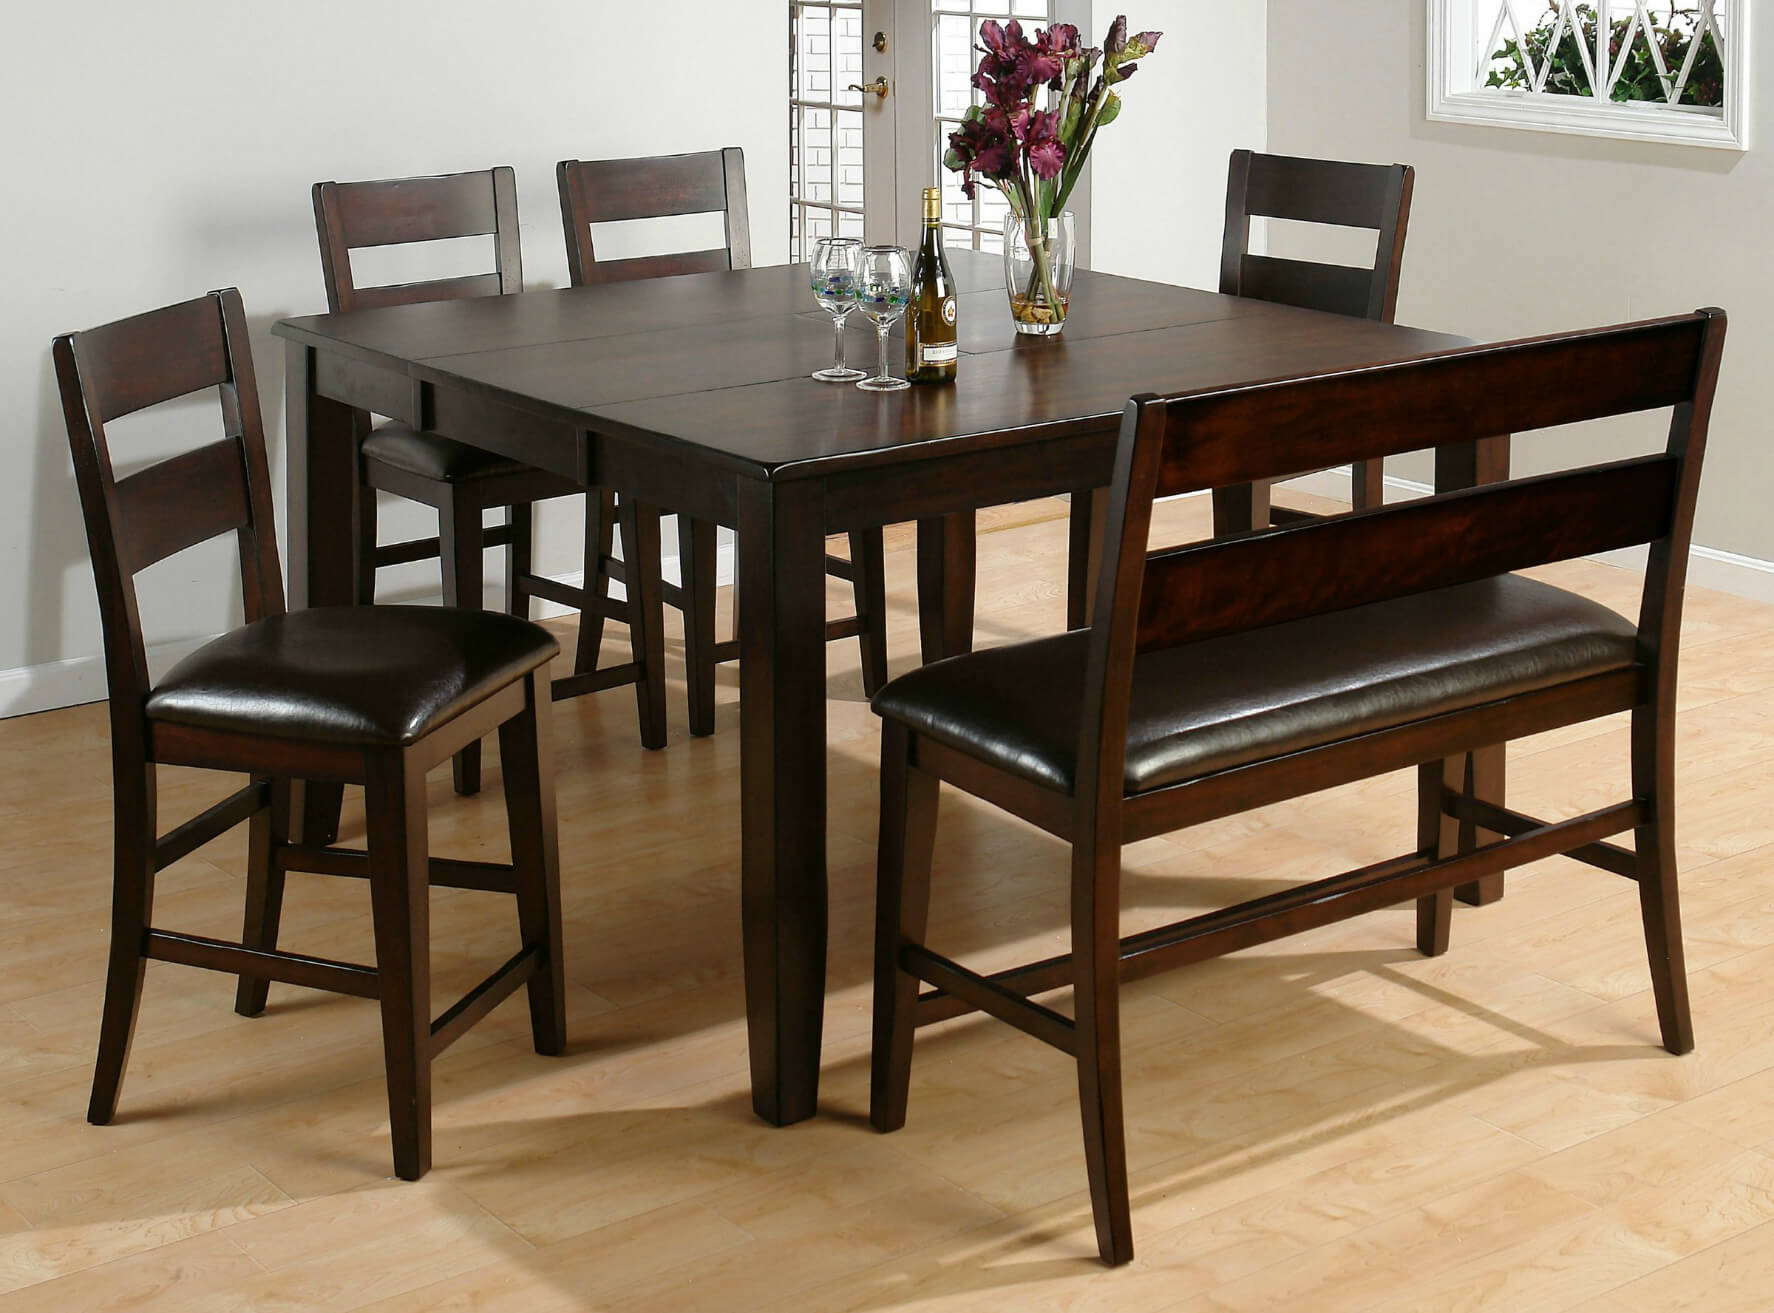 Bon Hereu0027s A Counter Height Square Dining Room Table With Bench. Moreover, The  Bench Includes